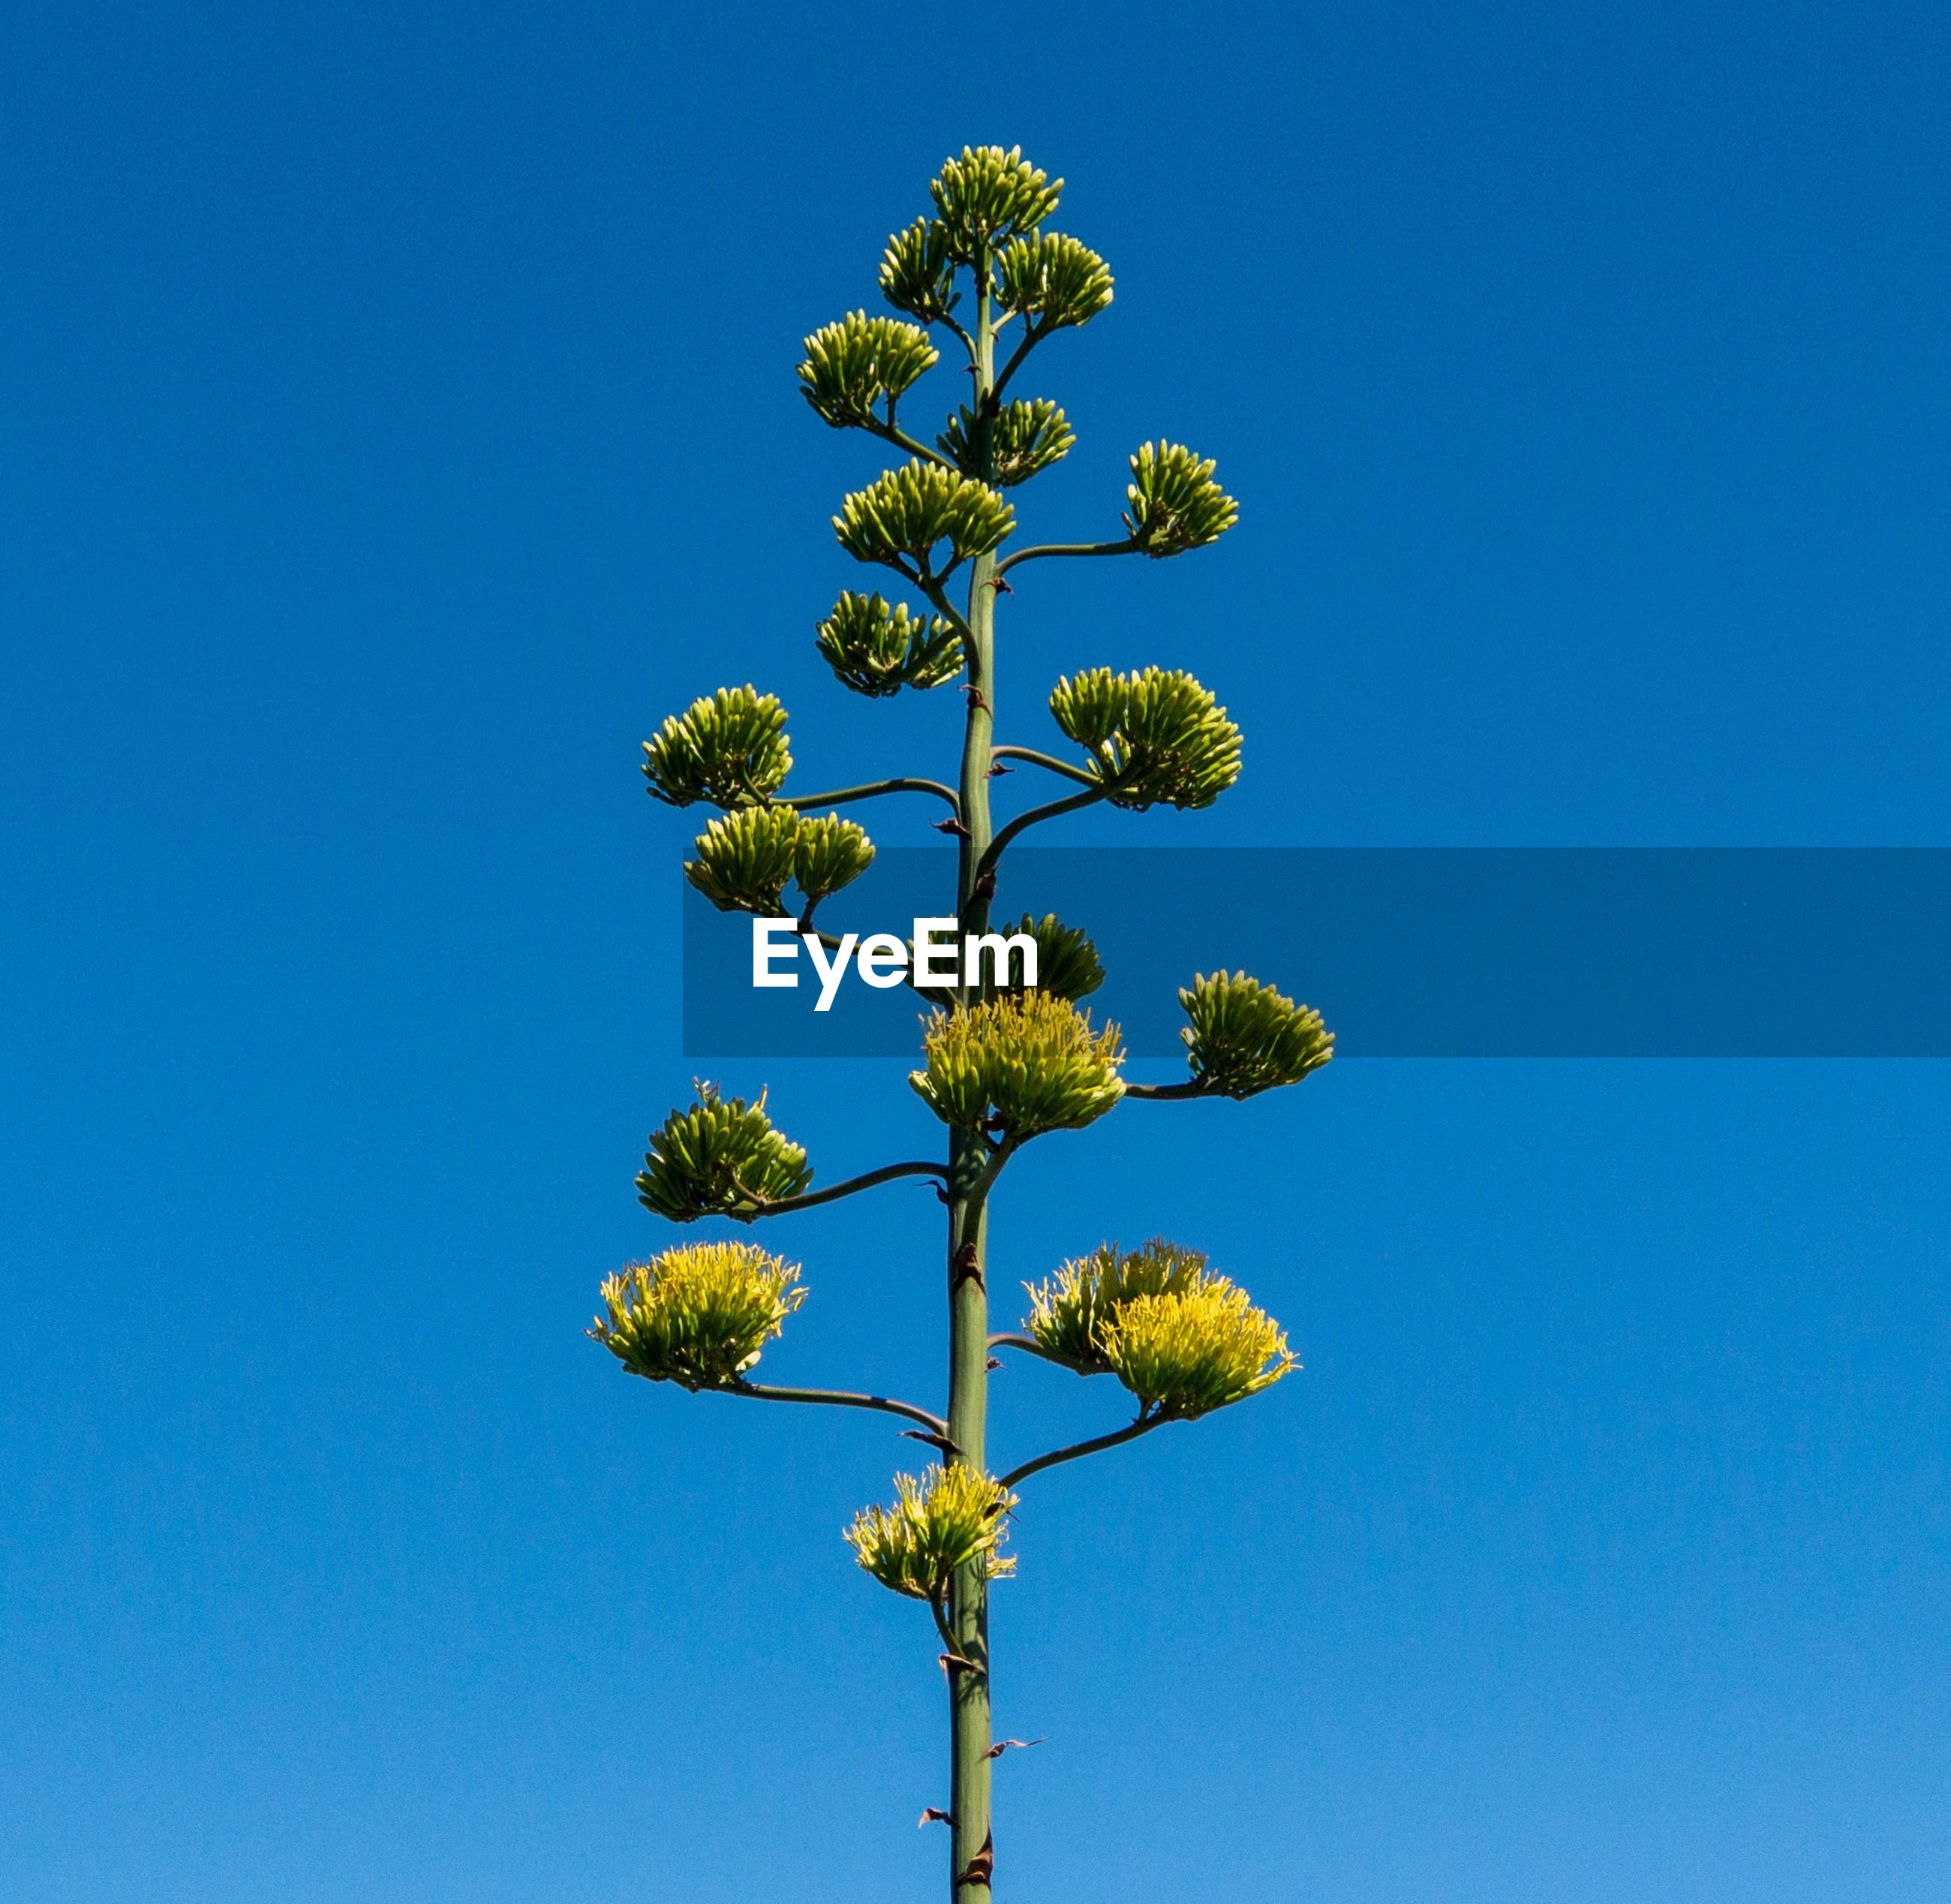 LOW ANGLE VIEW OF FLOWERING PLANTS AGAINST BLUE SKY